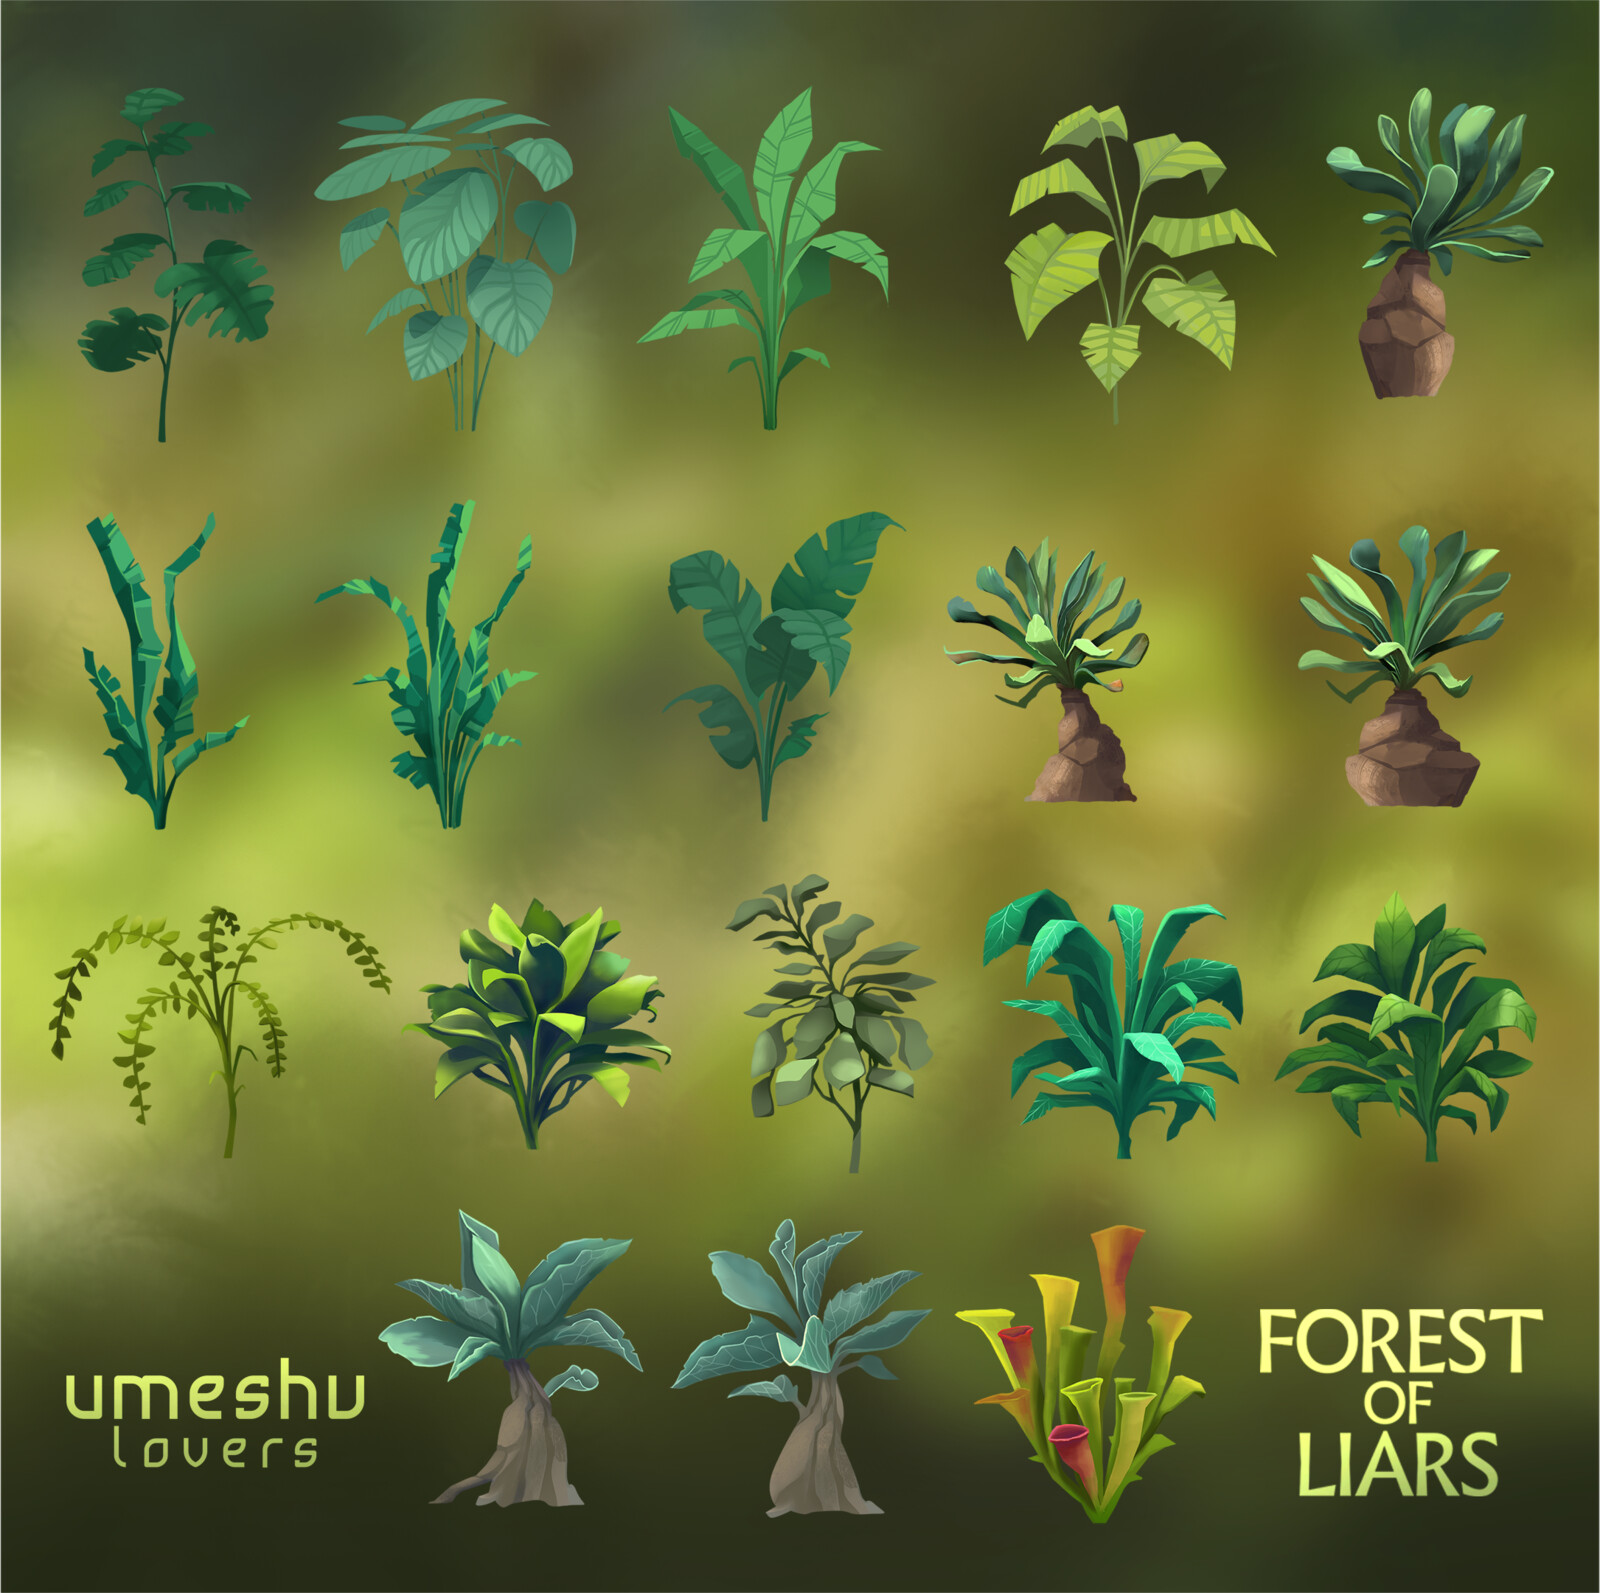 Vegetation assets for Forest of Liars by Umeshu Lovers